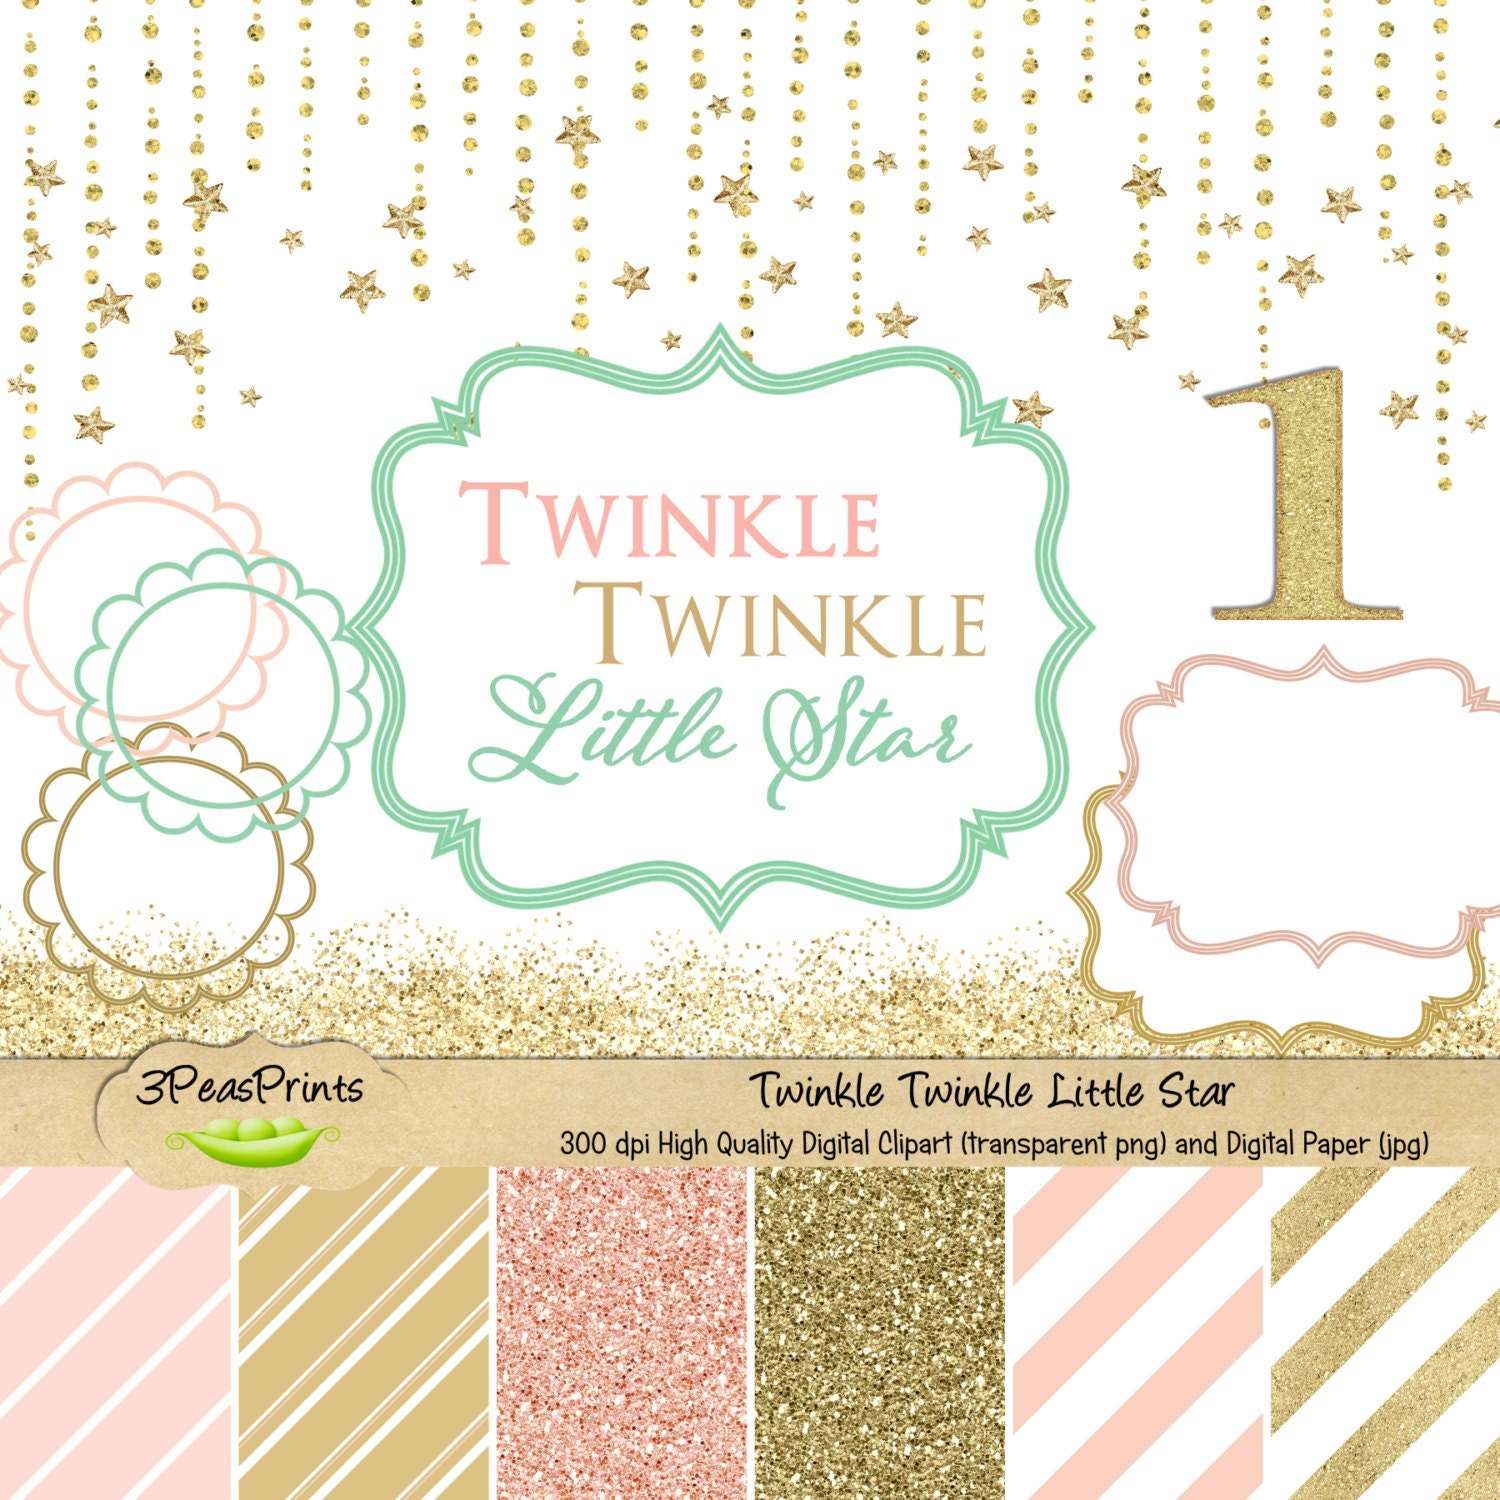 Twinkle Twinkle Little Star Clipart and Digital Paper Pack